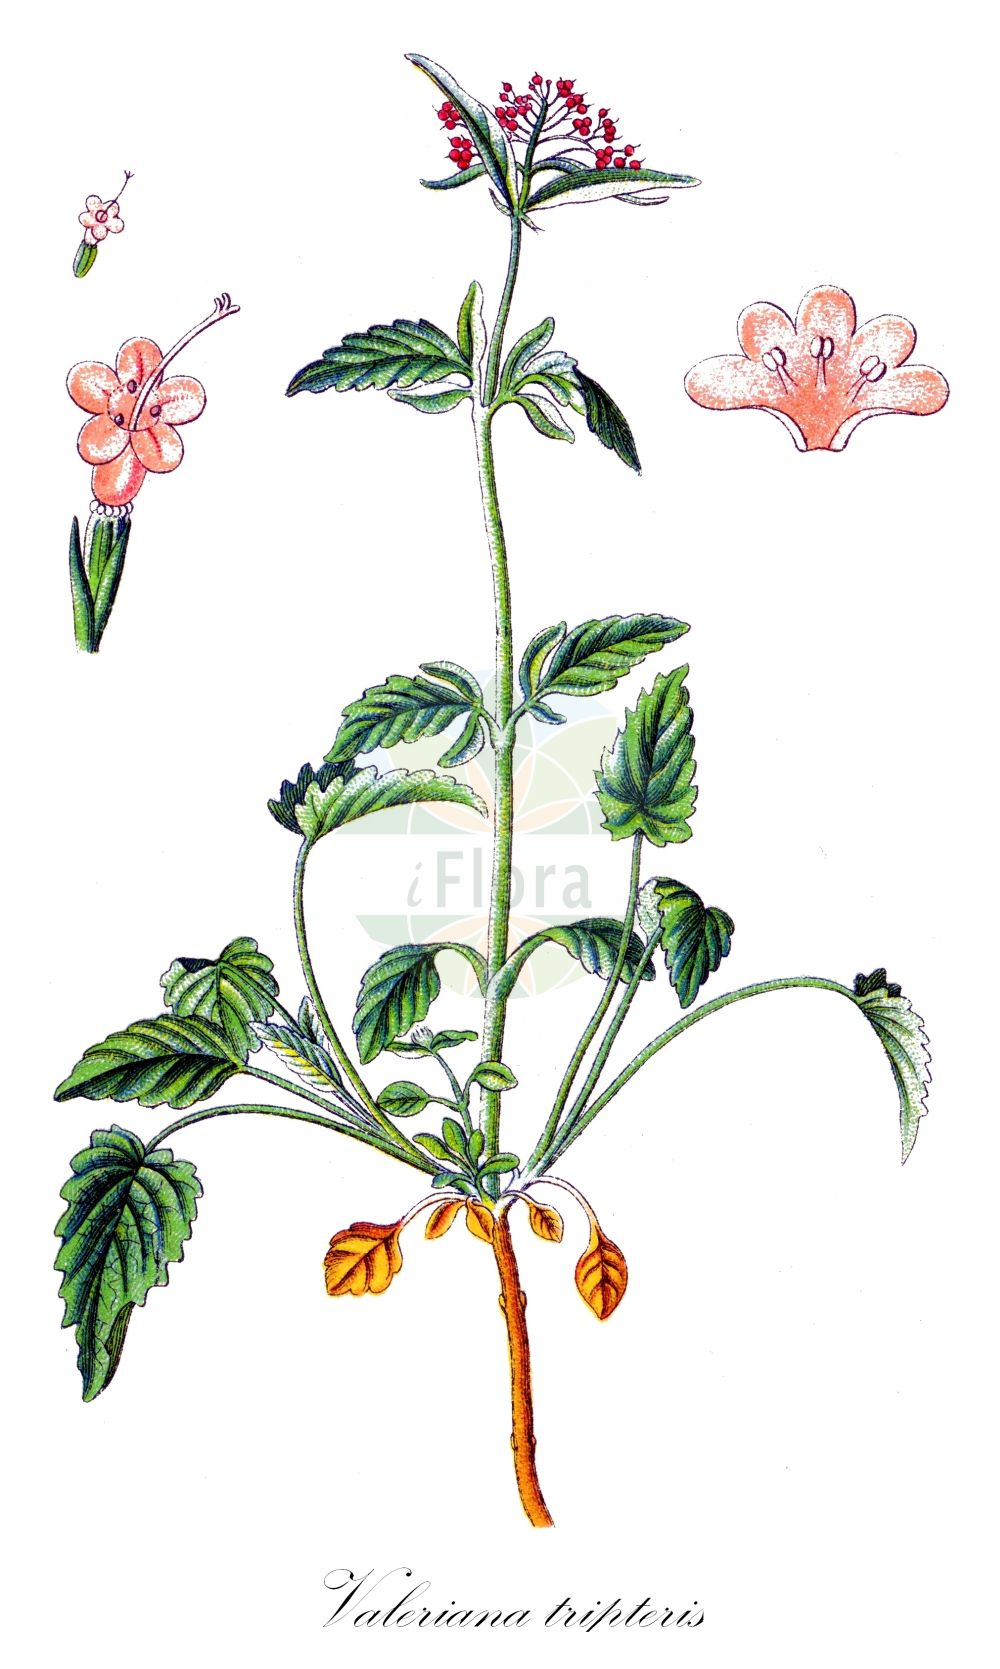 Historische Abbildung von Valeriana tripteris (Dreiblaettriger Baldrian - Three-leaved Valerian). Das Bild zeigt Blatt, Bluete, Frucht und Same. ---- Historical Drawing of Valeriana tripteris (Dreiblaettriger Baldrian - Three-leaved Valerian).The image is showing leaf, flower, fruit and seed.(Valeriana tripteris,Dreiblaettriger Baldrian,Three-leaved Valerian,Valeriana heterophylla,Valeriana transsilvanica,subsp. tomentella,Behaarter Dreischnittiger Baldrian,Österreichischer ,Valeriana,Baldrian,Valerian,Caprifoliaceae,Geissblattgewaechse,Honeysuckle family,Blatt,Bluete,Frucht,Same,leaf,flower,fruit,seed,Sturm (1796f))